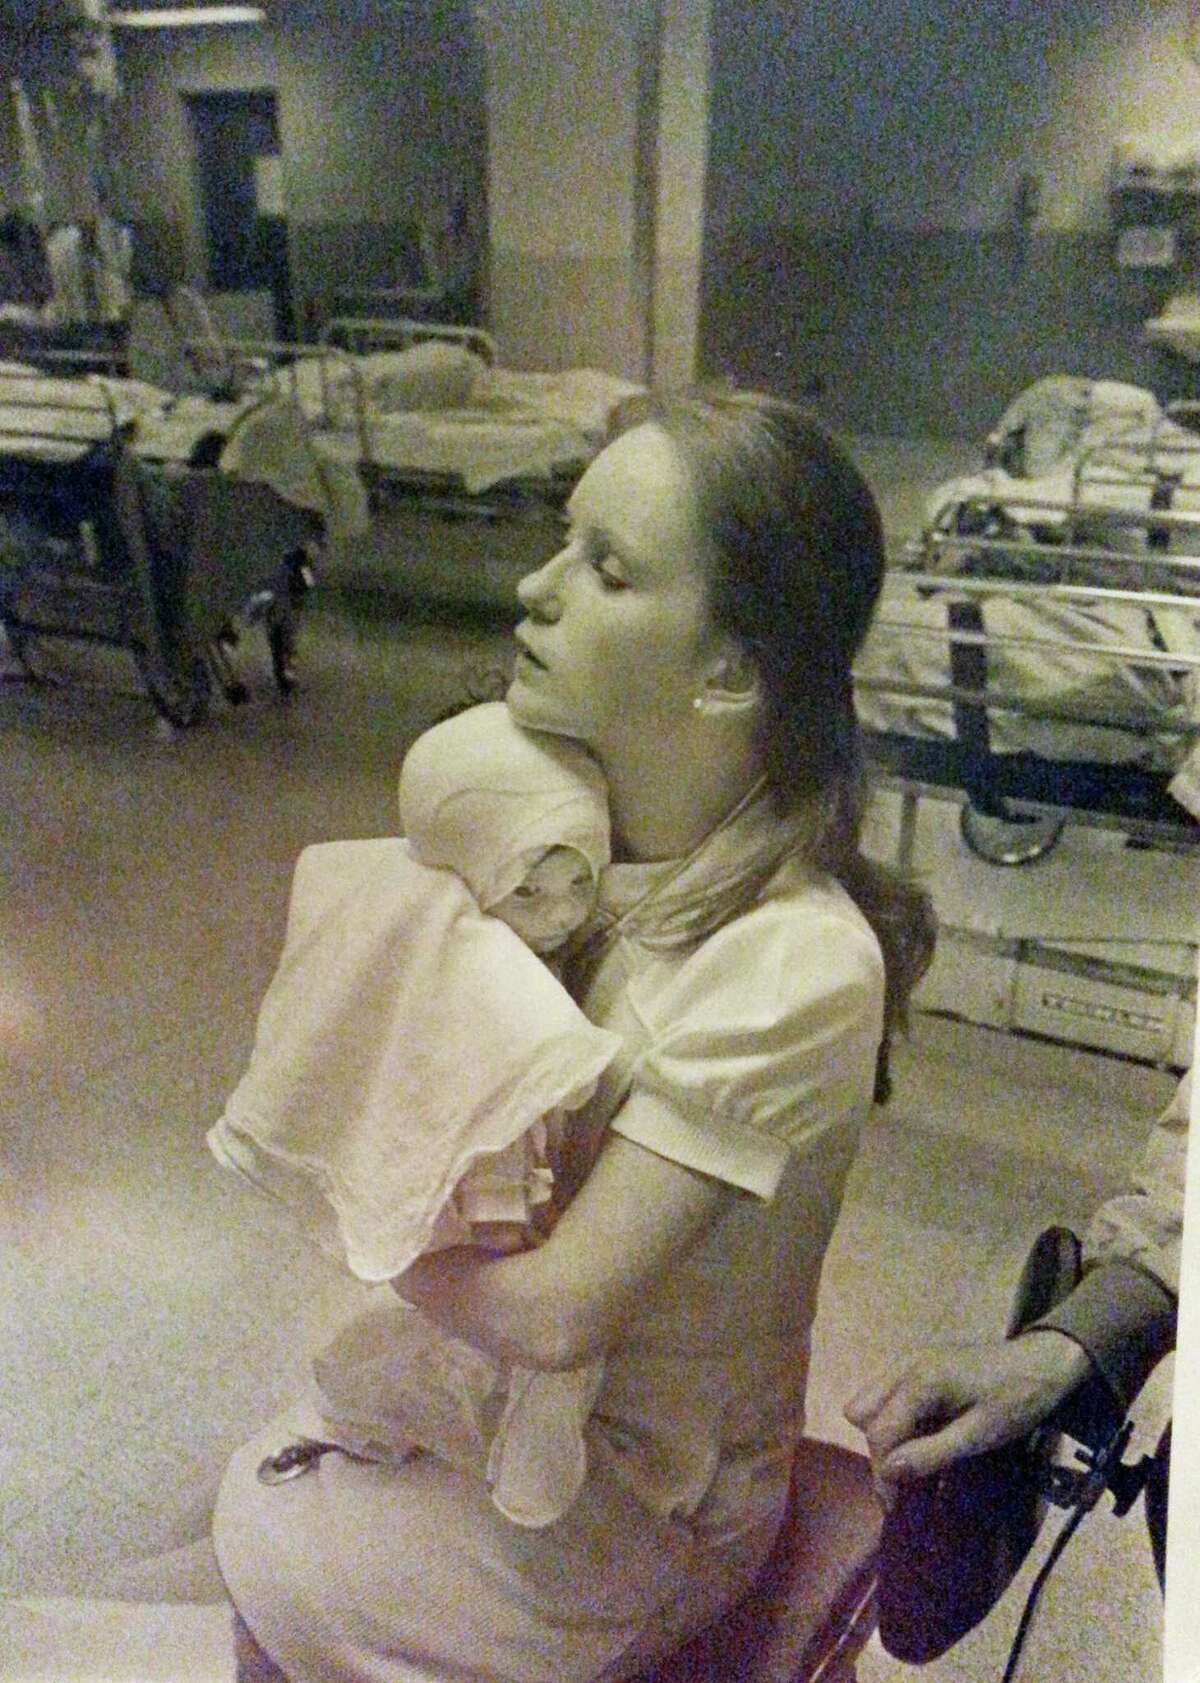 In this 1977 photo provided by Albany Medical Center, nurse Susan Berger cuddles infant Amanda Scarpinati, who had been severely burned by a steam vaporizer at home, in the pediatric unit at Albany Medical Center in Albany N.Y. Scarpinati kept the hospitalís annual report that published the photo and was comforted by the picture when she was bullied for her burn scars as a child. She recently used social media to learn Bergerís identity so she could thank her for her loving care. Albany Medical Center has arranged for the two women to meet on Tuesday, Sept. 29, 2015.